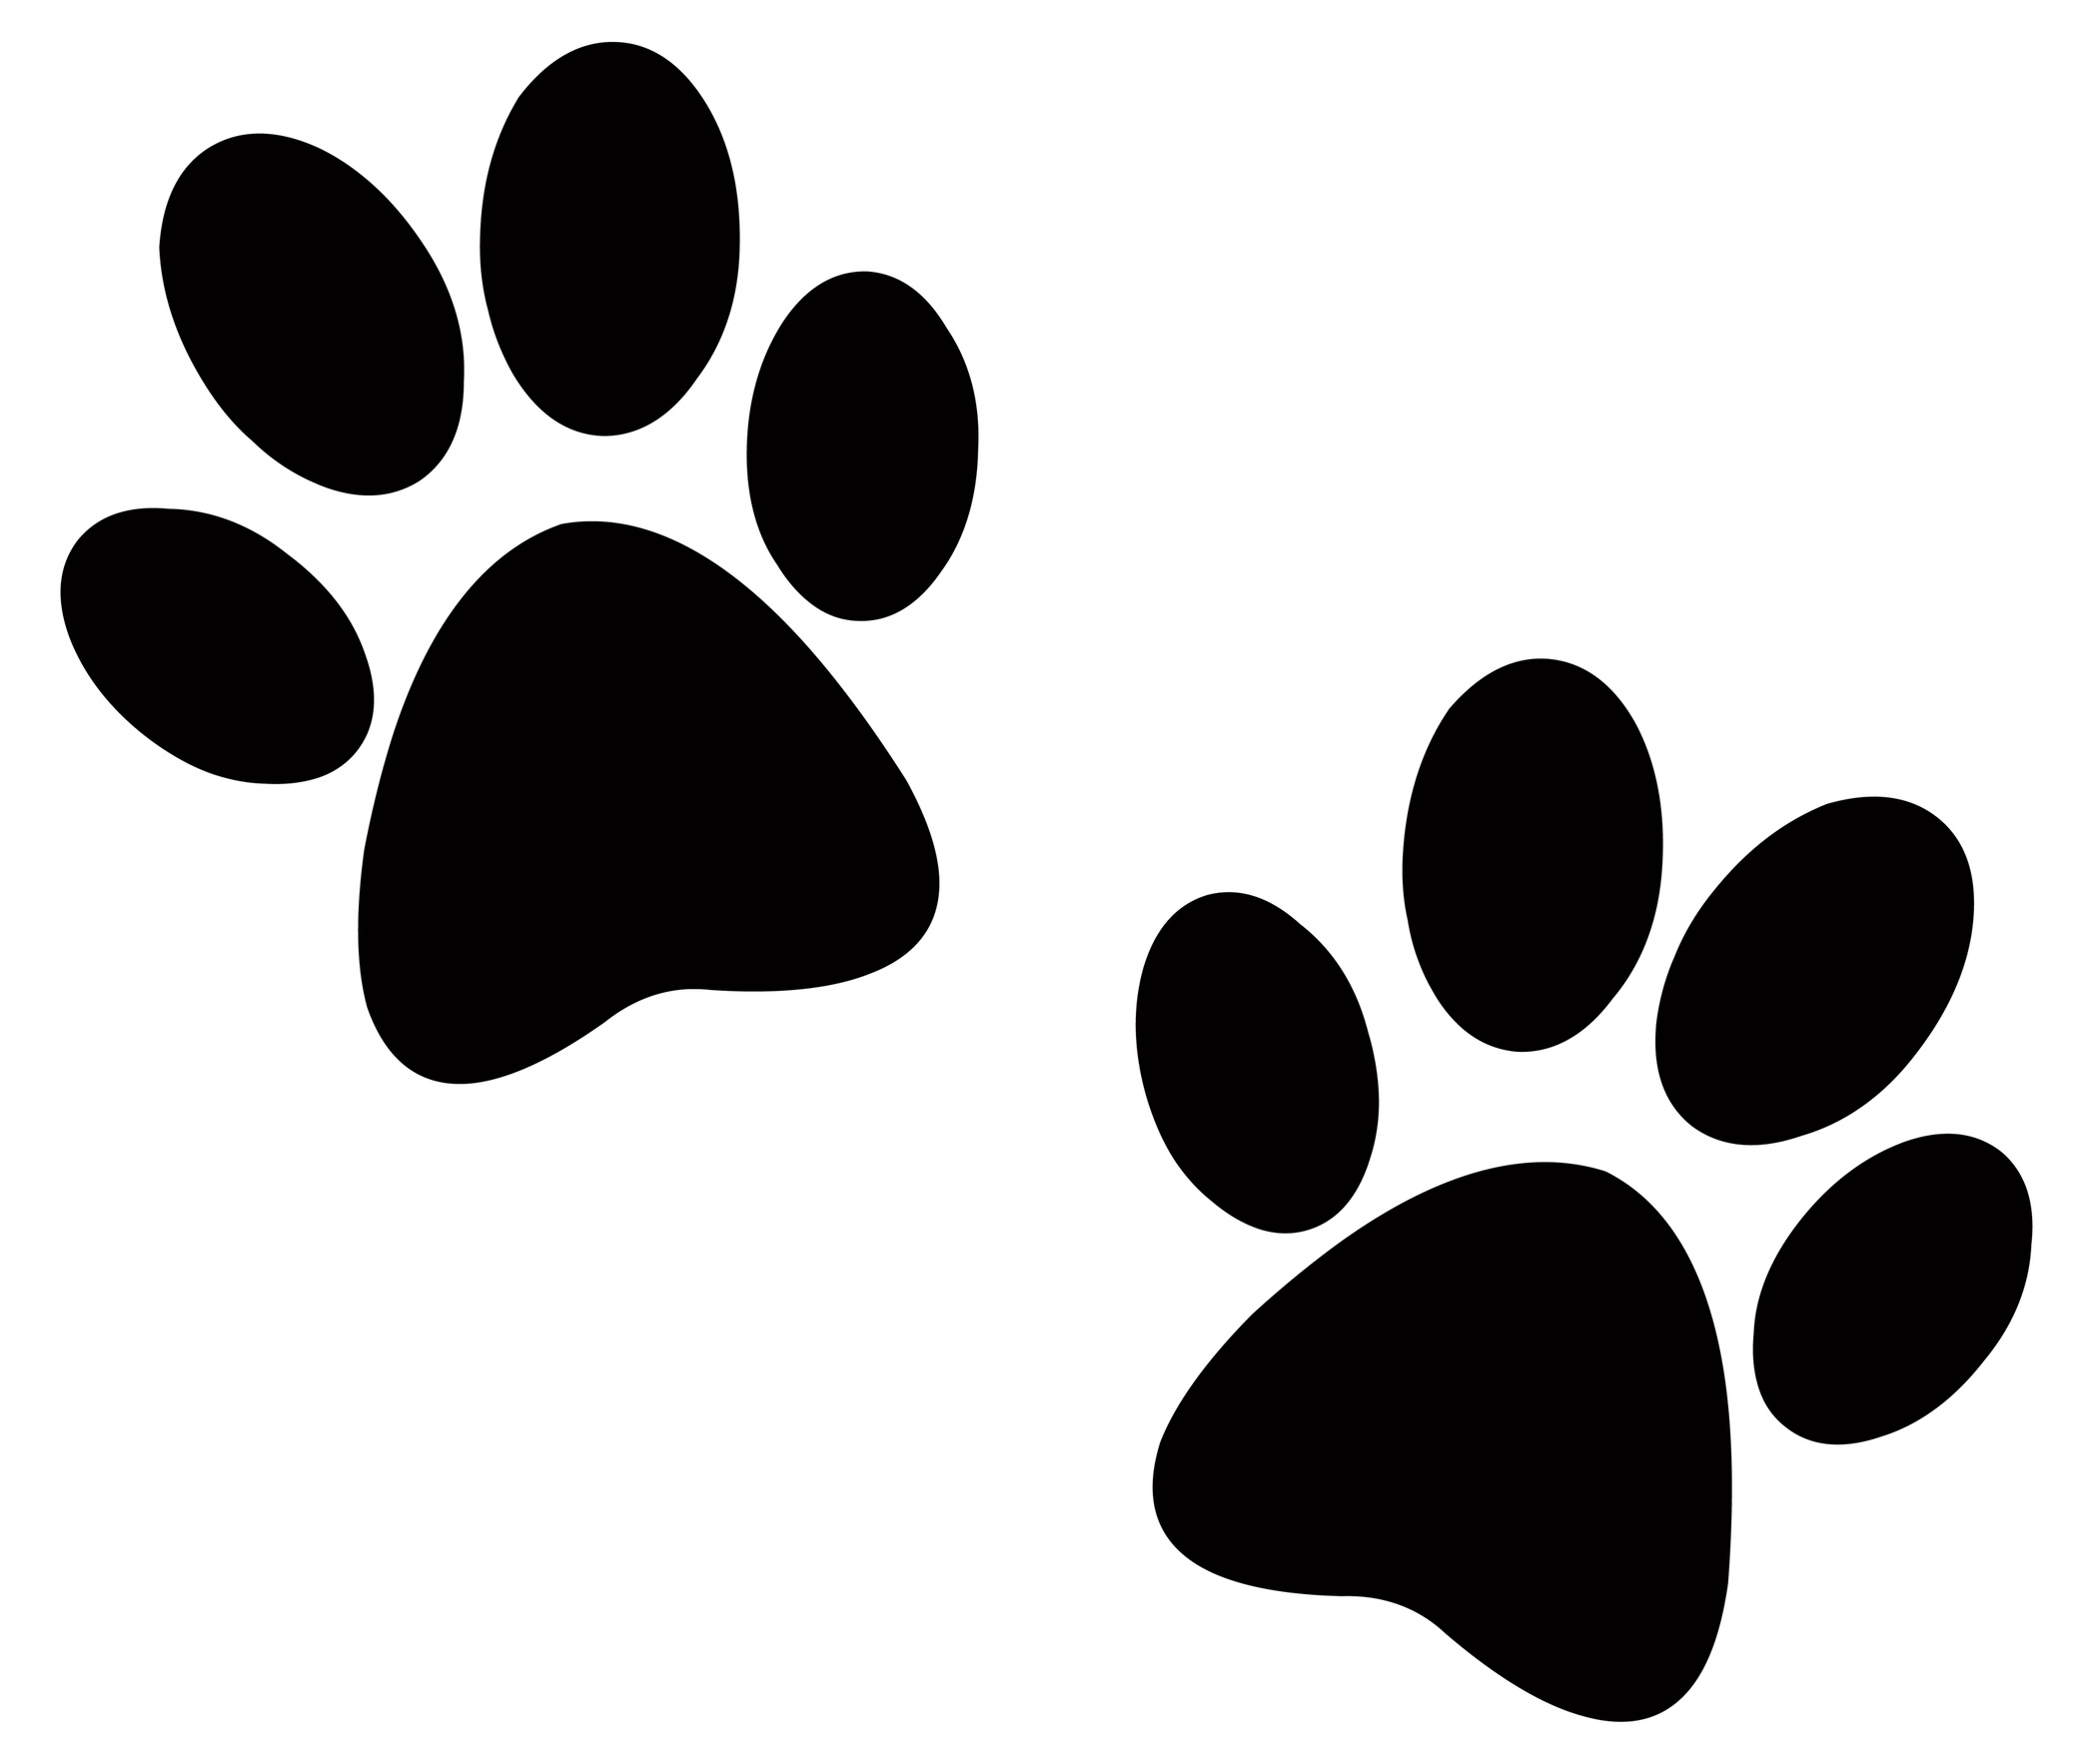 tiger tracks clip art - photo #22